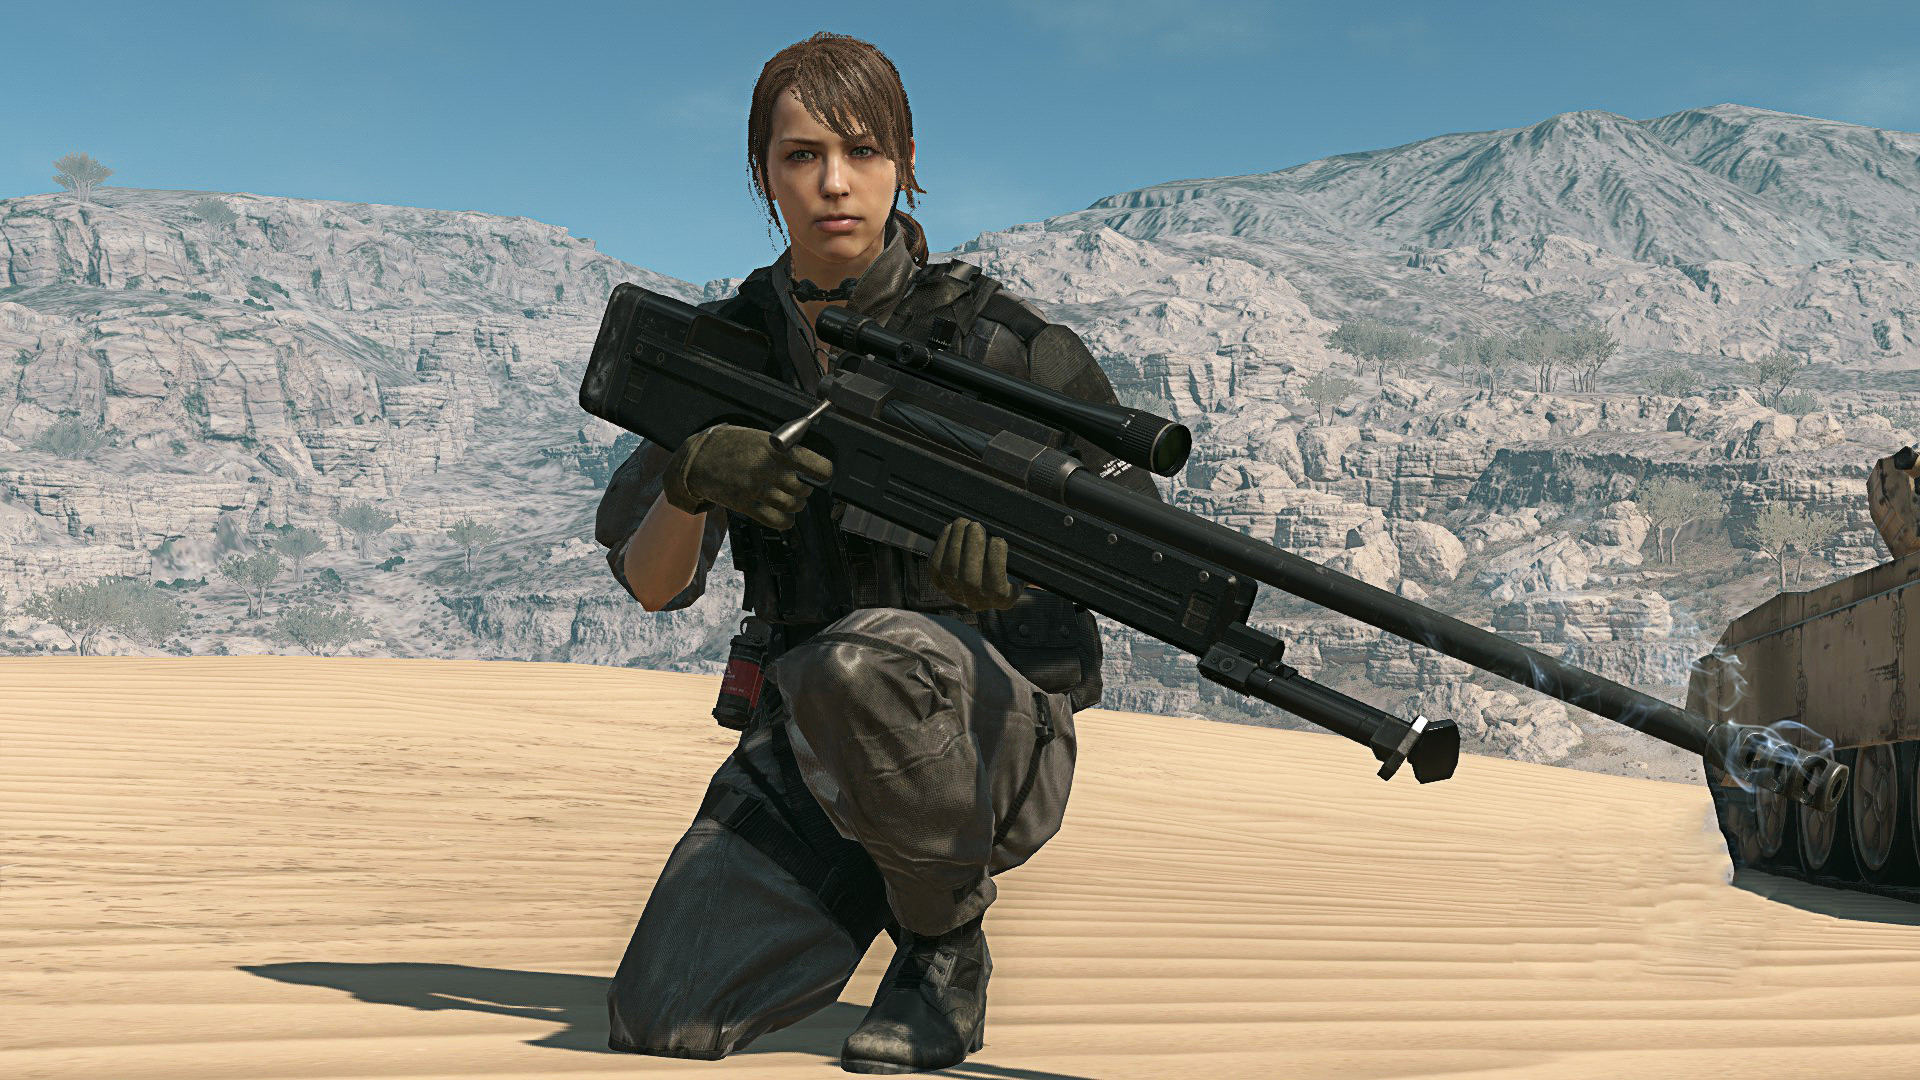 Res: 1920x1080, ... Quiet - Combat Gear - Metal Gear Solid V by BillyM12345